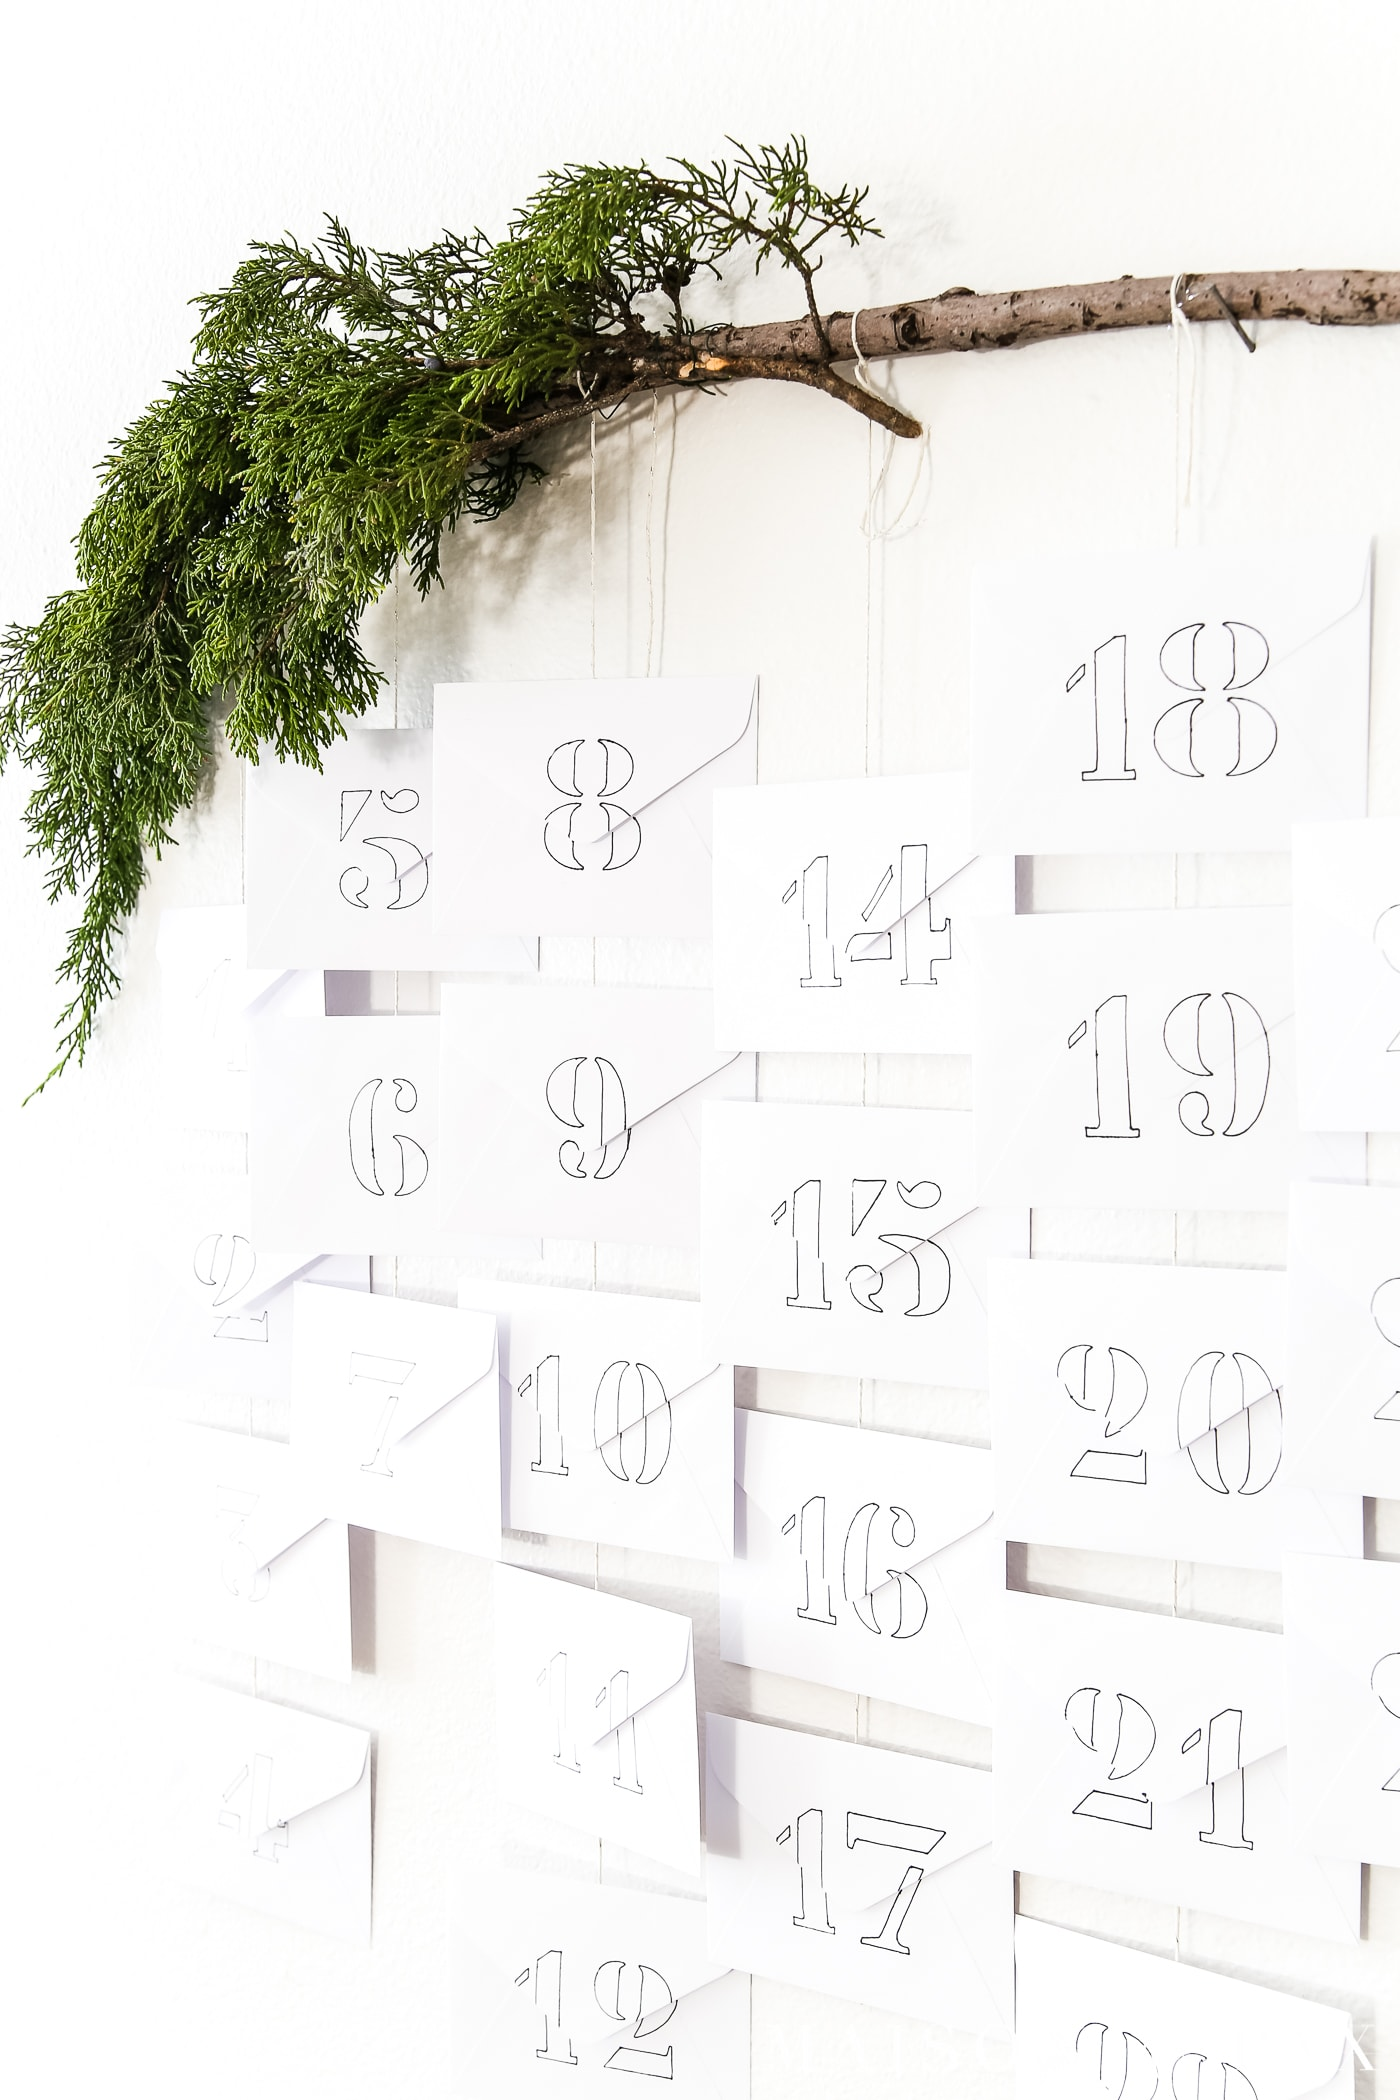 stencil numbers onto basic white envelopes for a diy advent calendar #adventcalendar